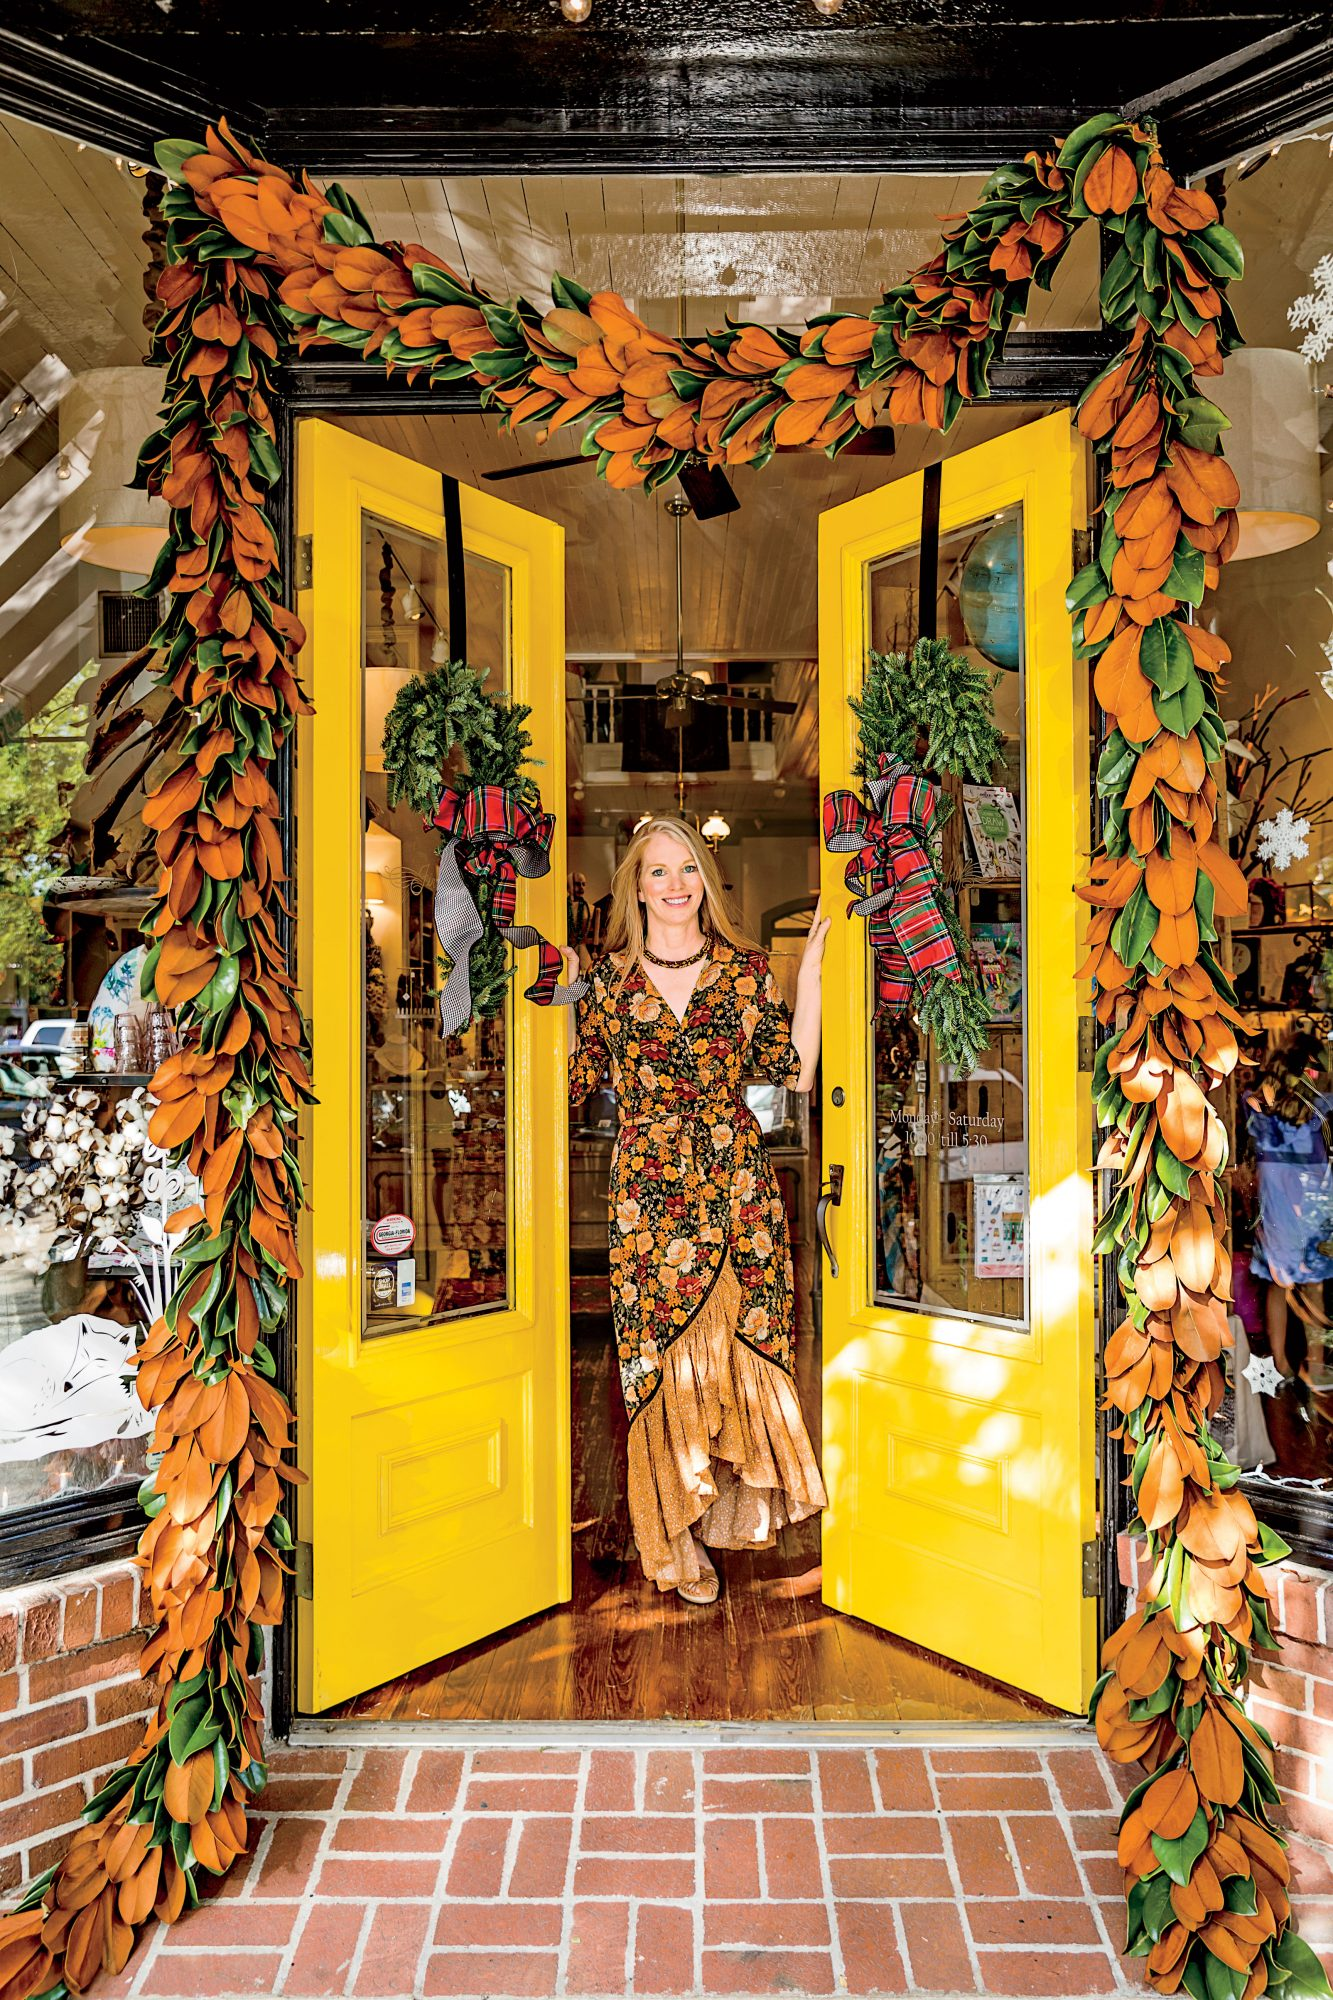 Nan Myers Owner of Firefly